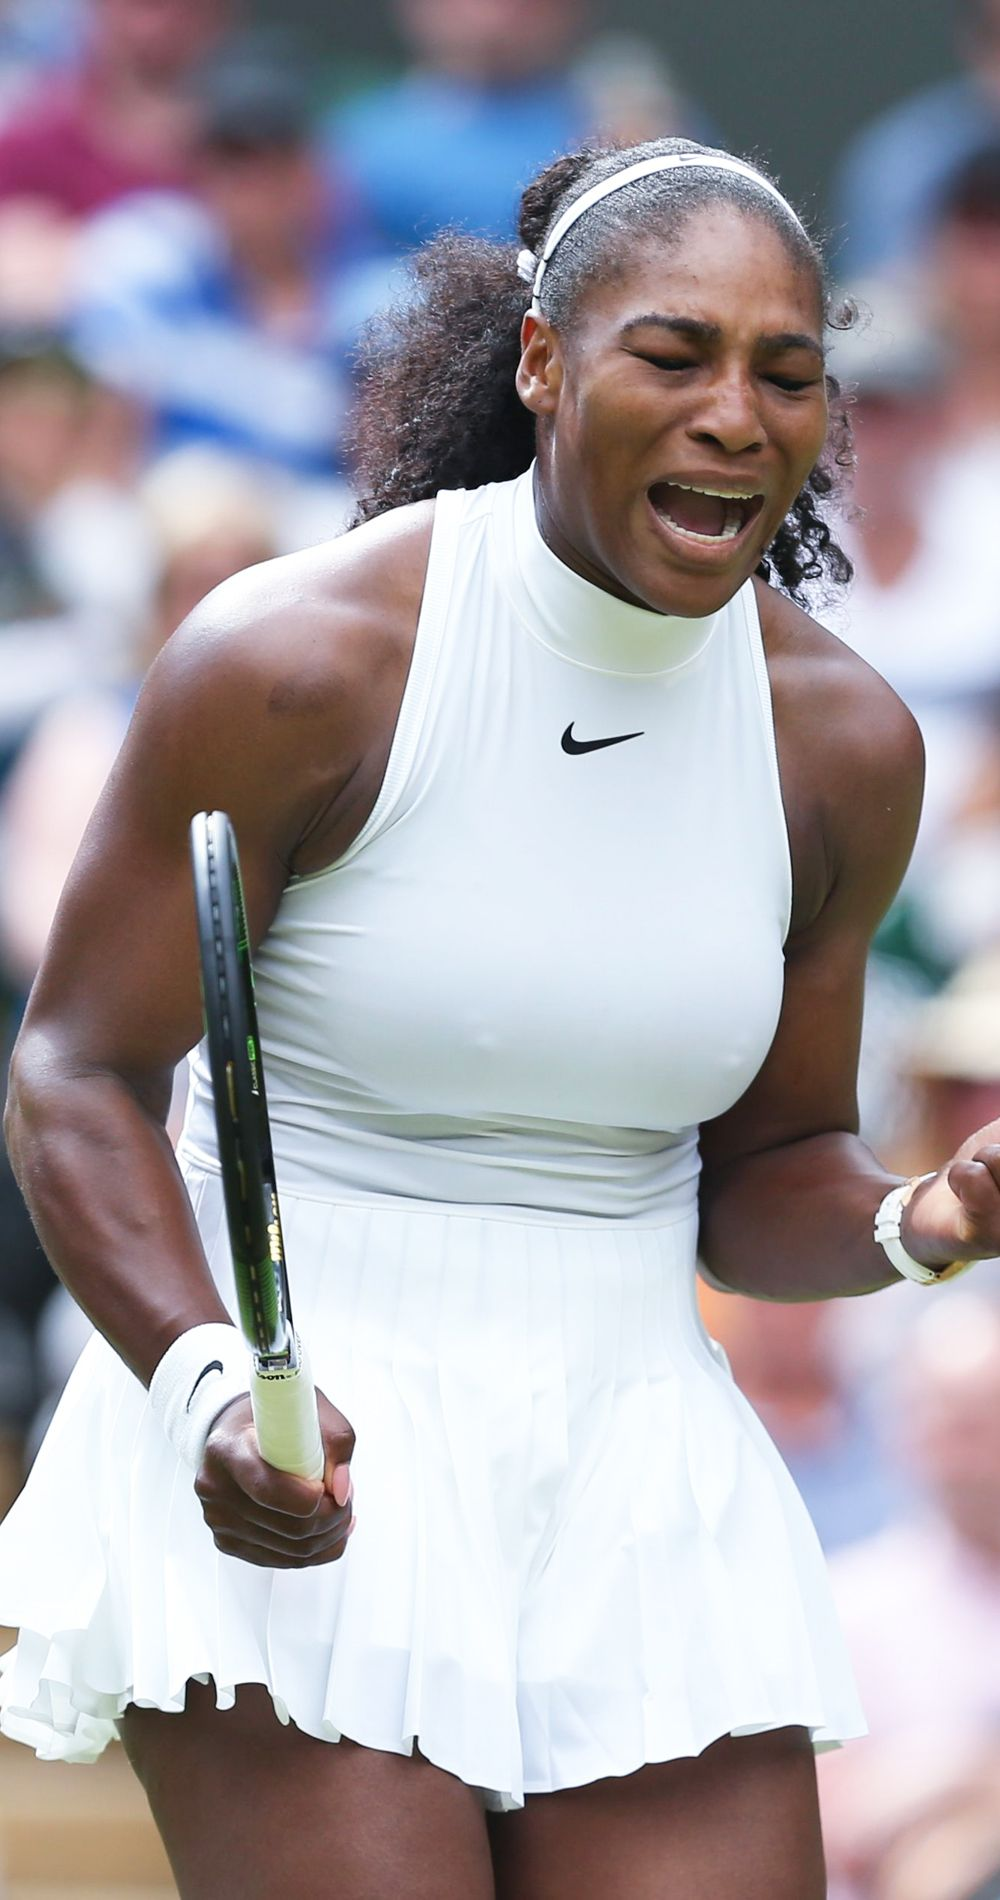 f561cfa01a So tonnes of people complained about Serena Williams  body at Wimbledon